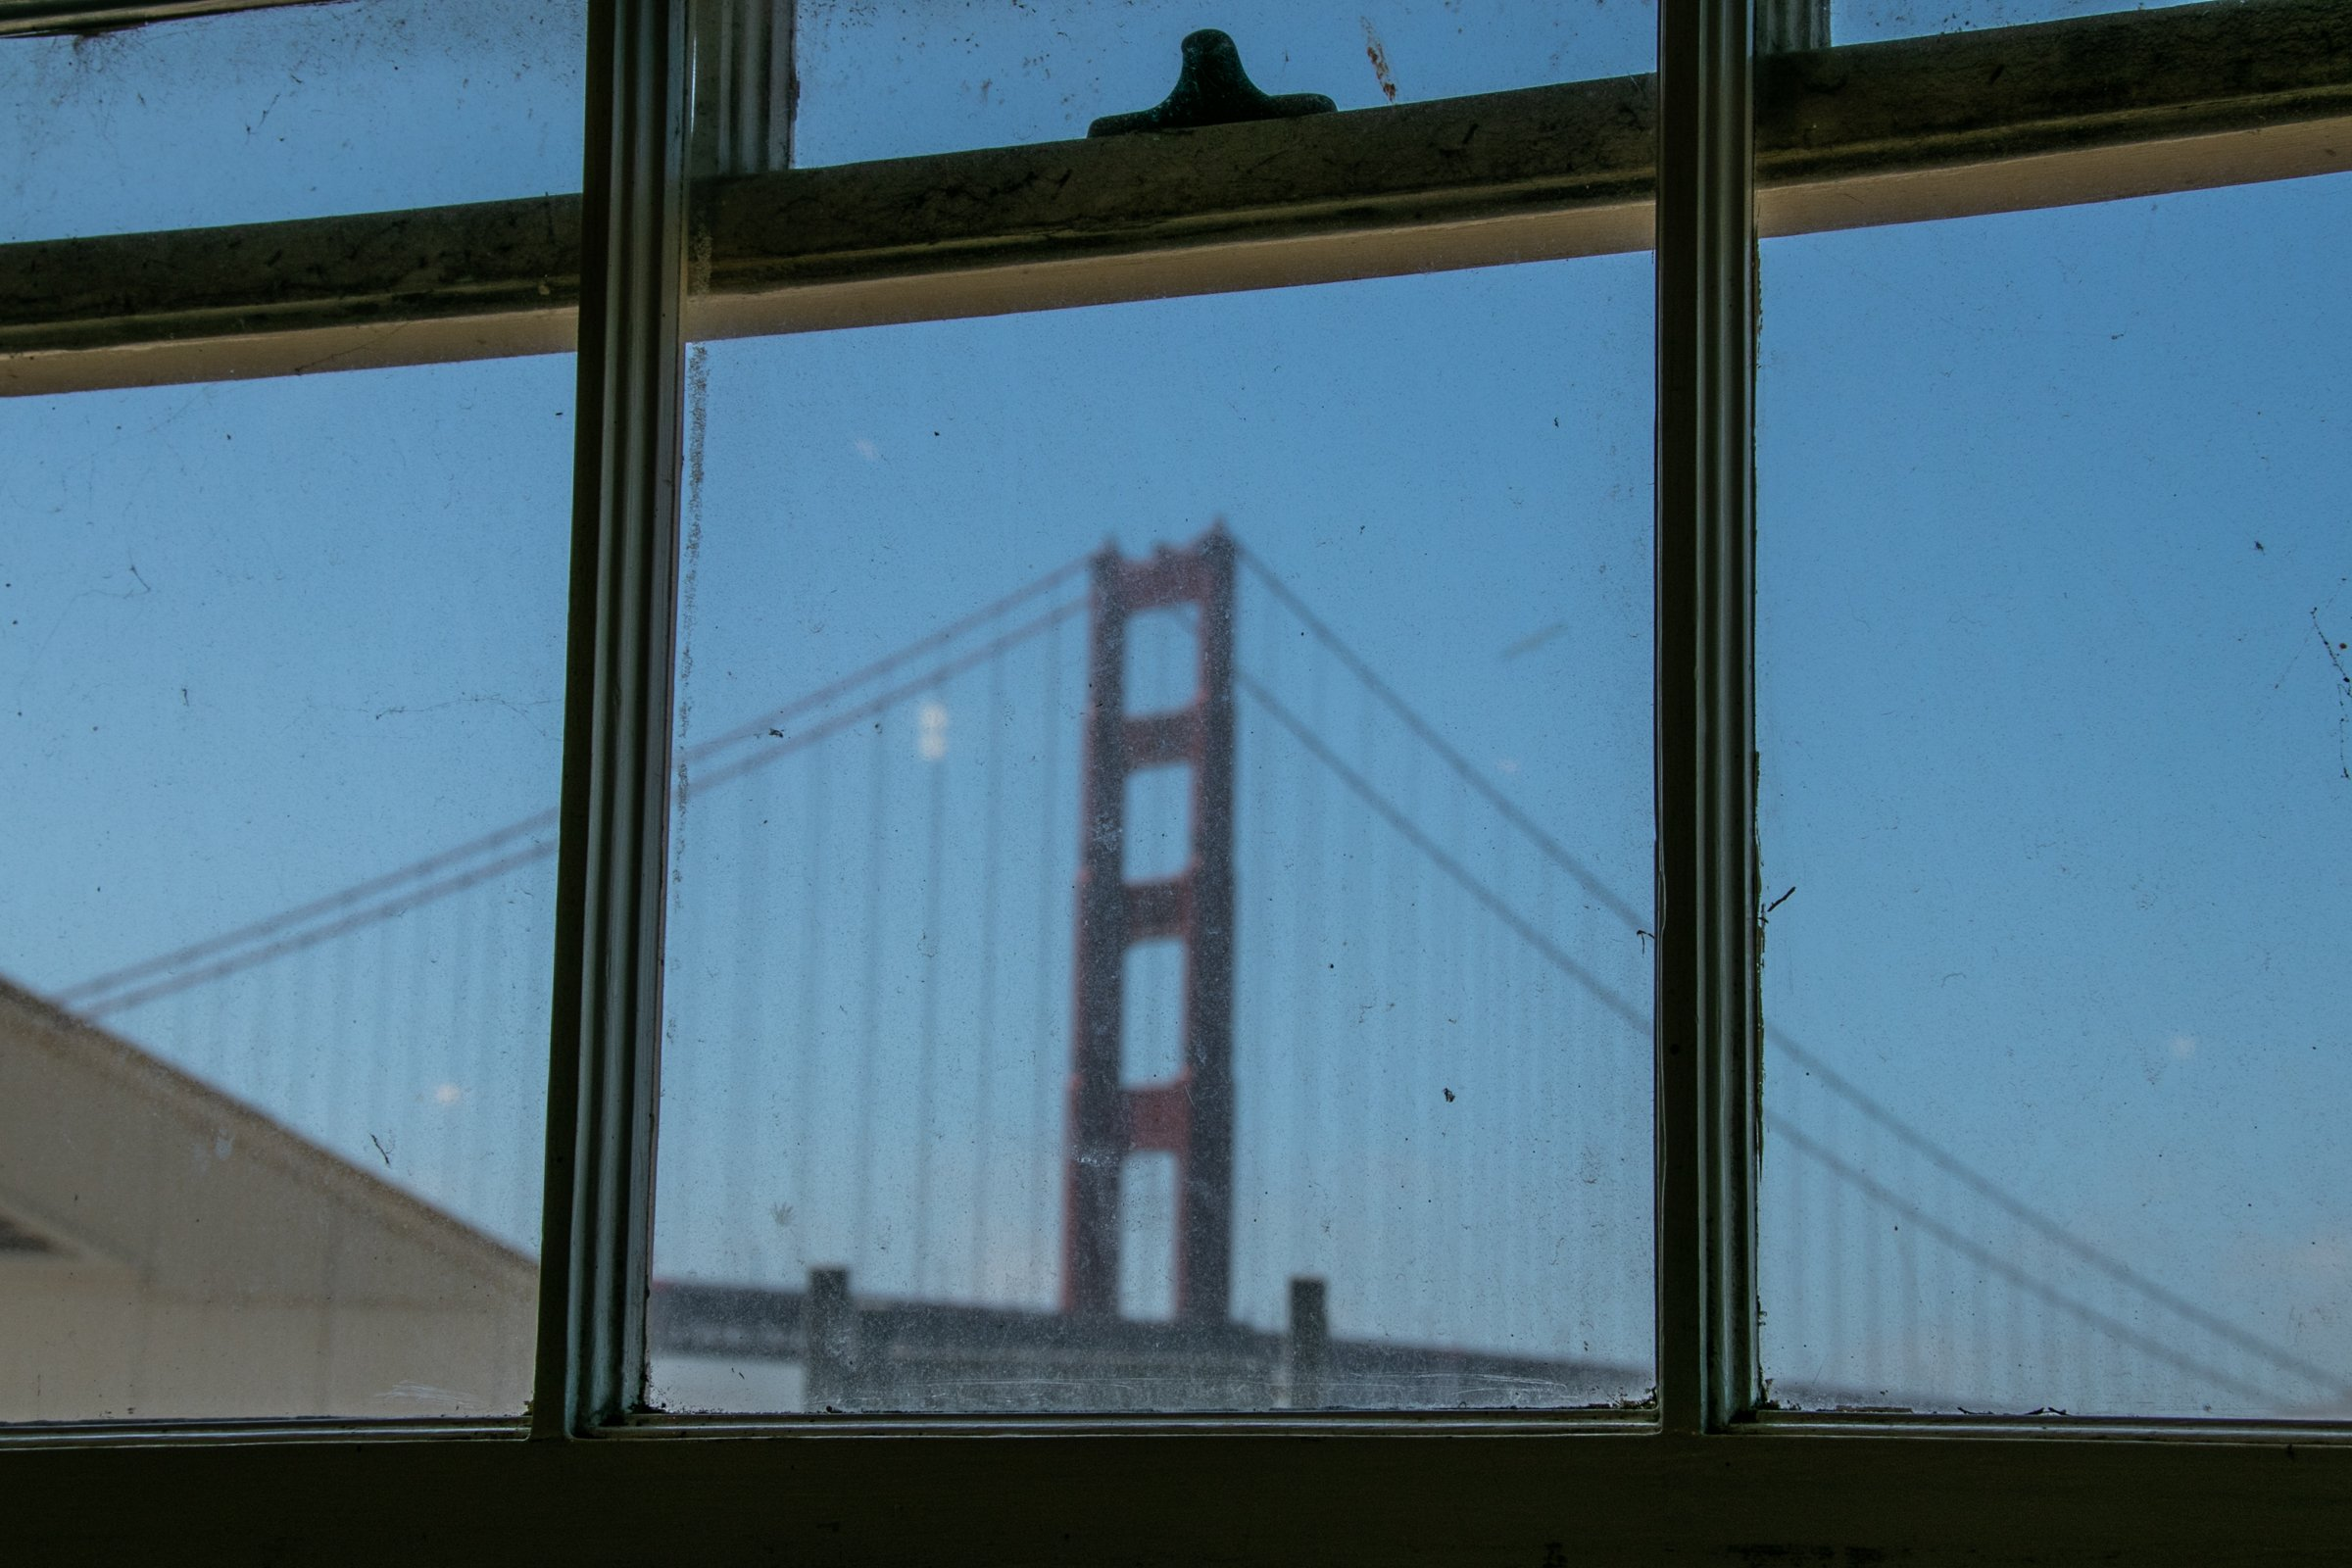 Golden Gate Bridge Through Window Panes